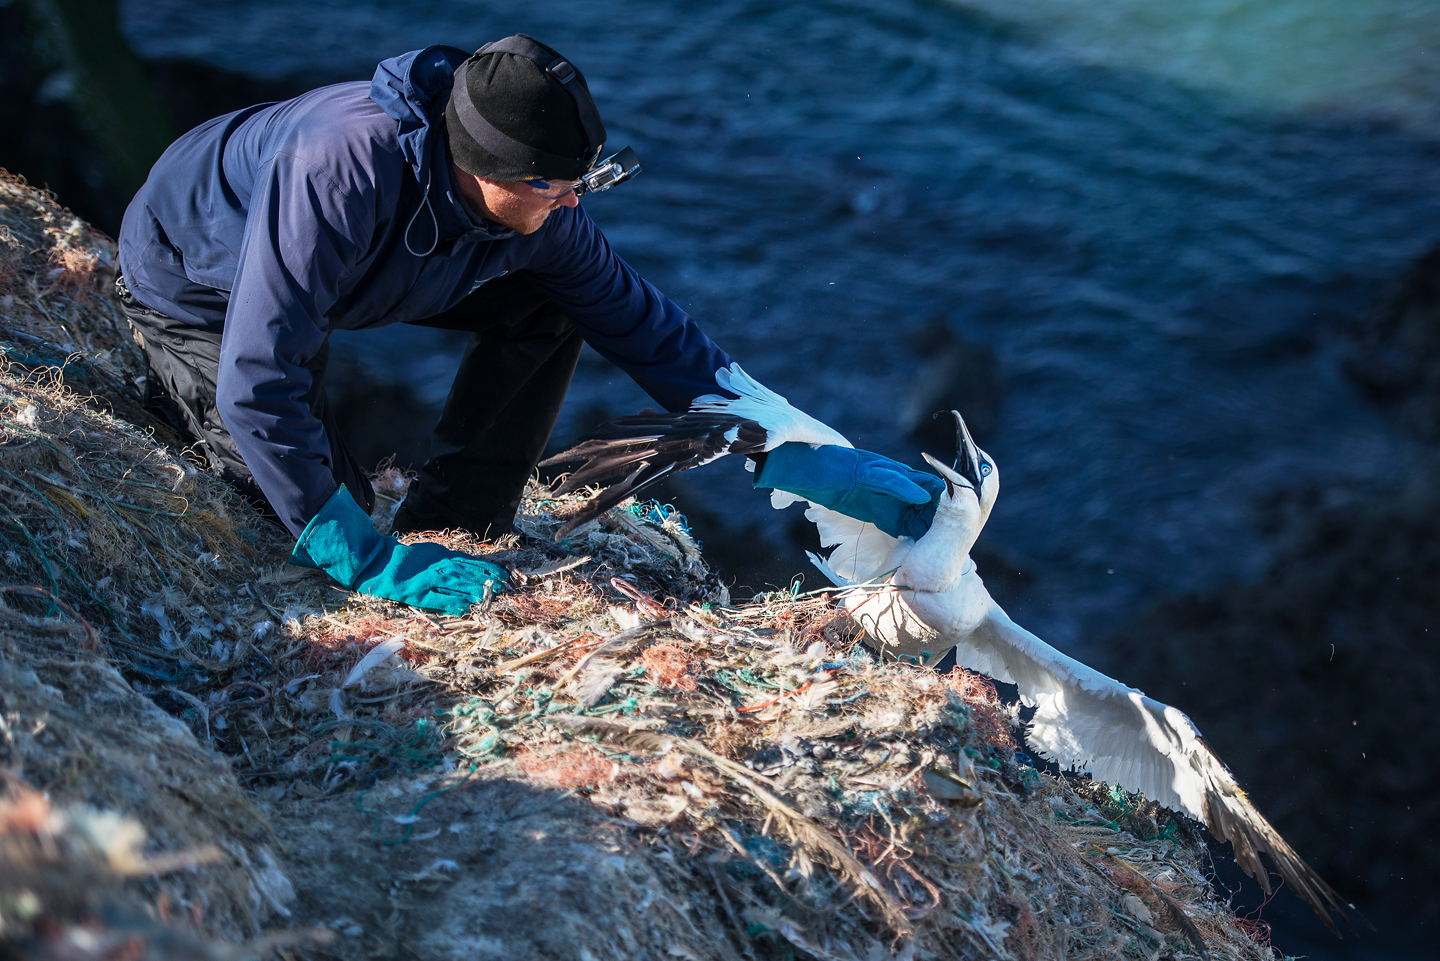 A team of volunteers led by RSPB Ramsey Island warden Greg Morgan visit Grassholm each year at the end of the breeding season. They are on a rescue mission to save as many gannets as possible from this death sentence